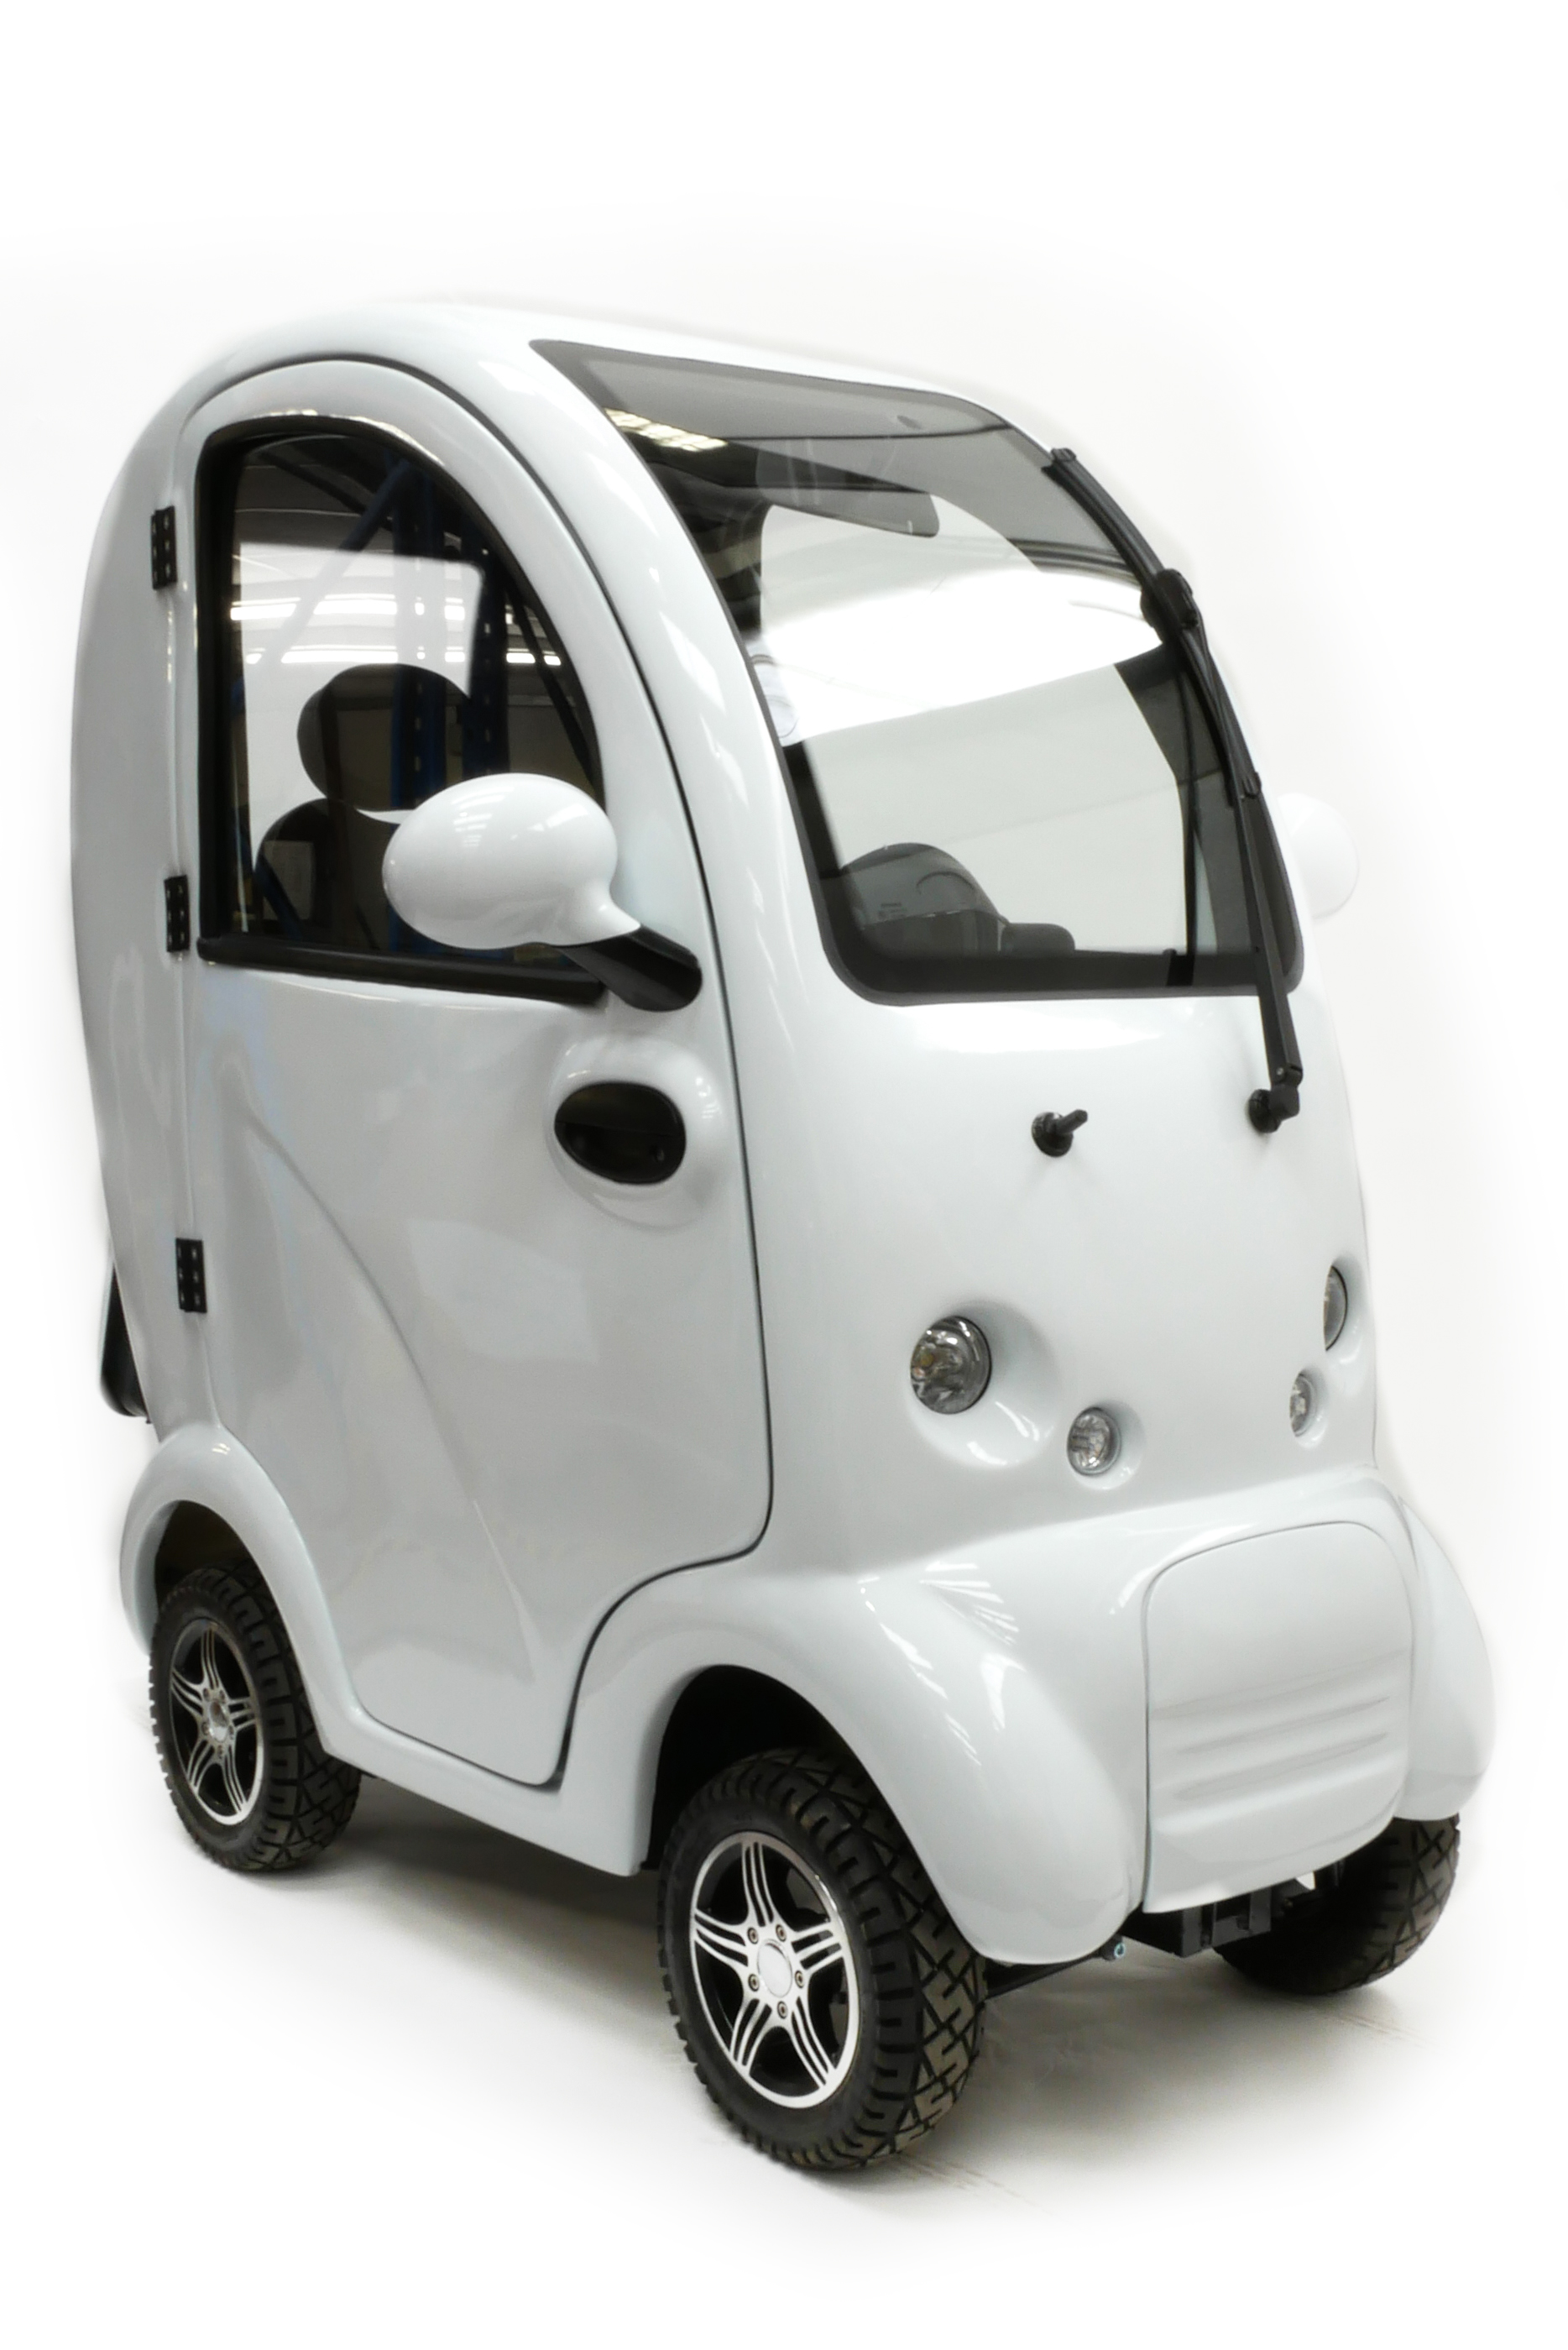 Cabin Car Scooter Mobility Scooter From Active Mobility